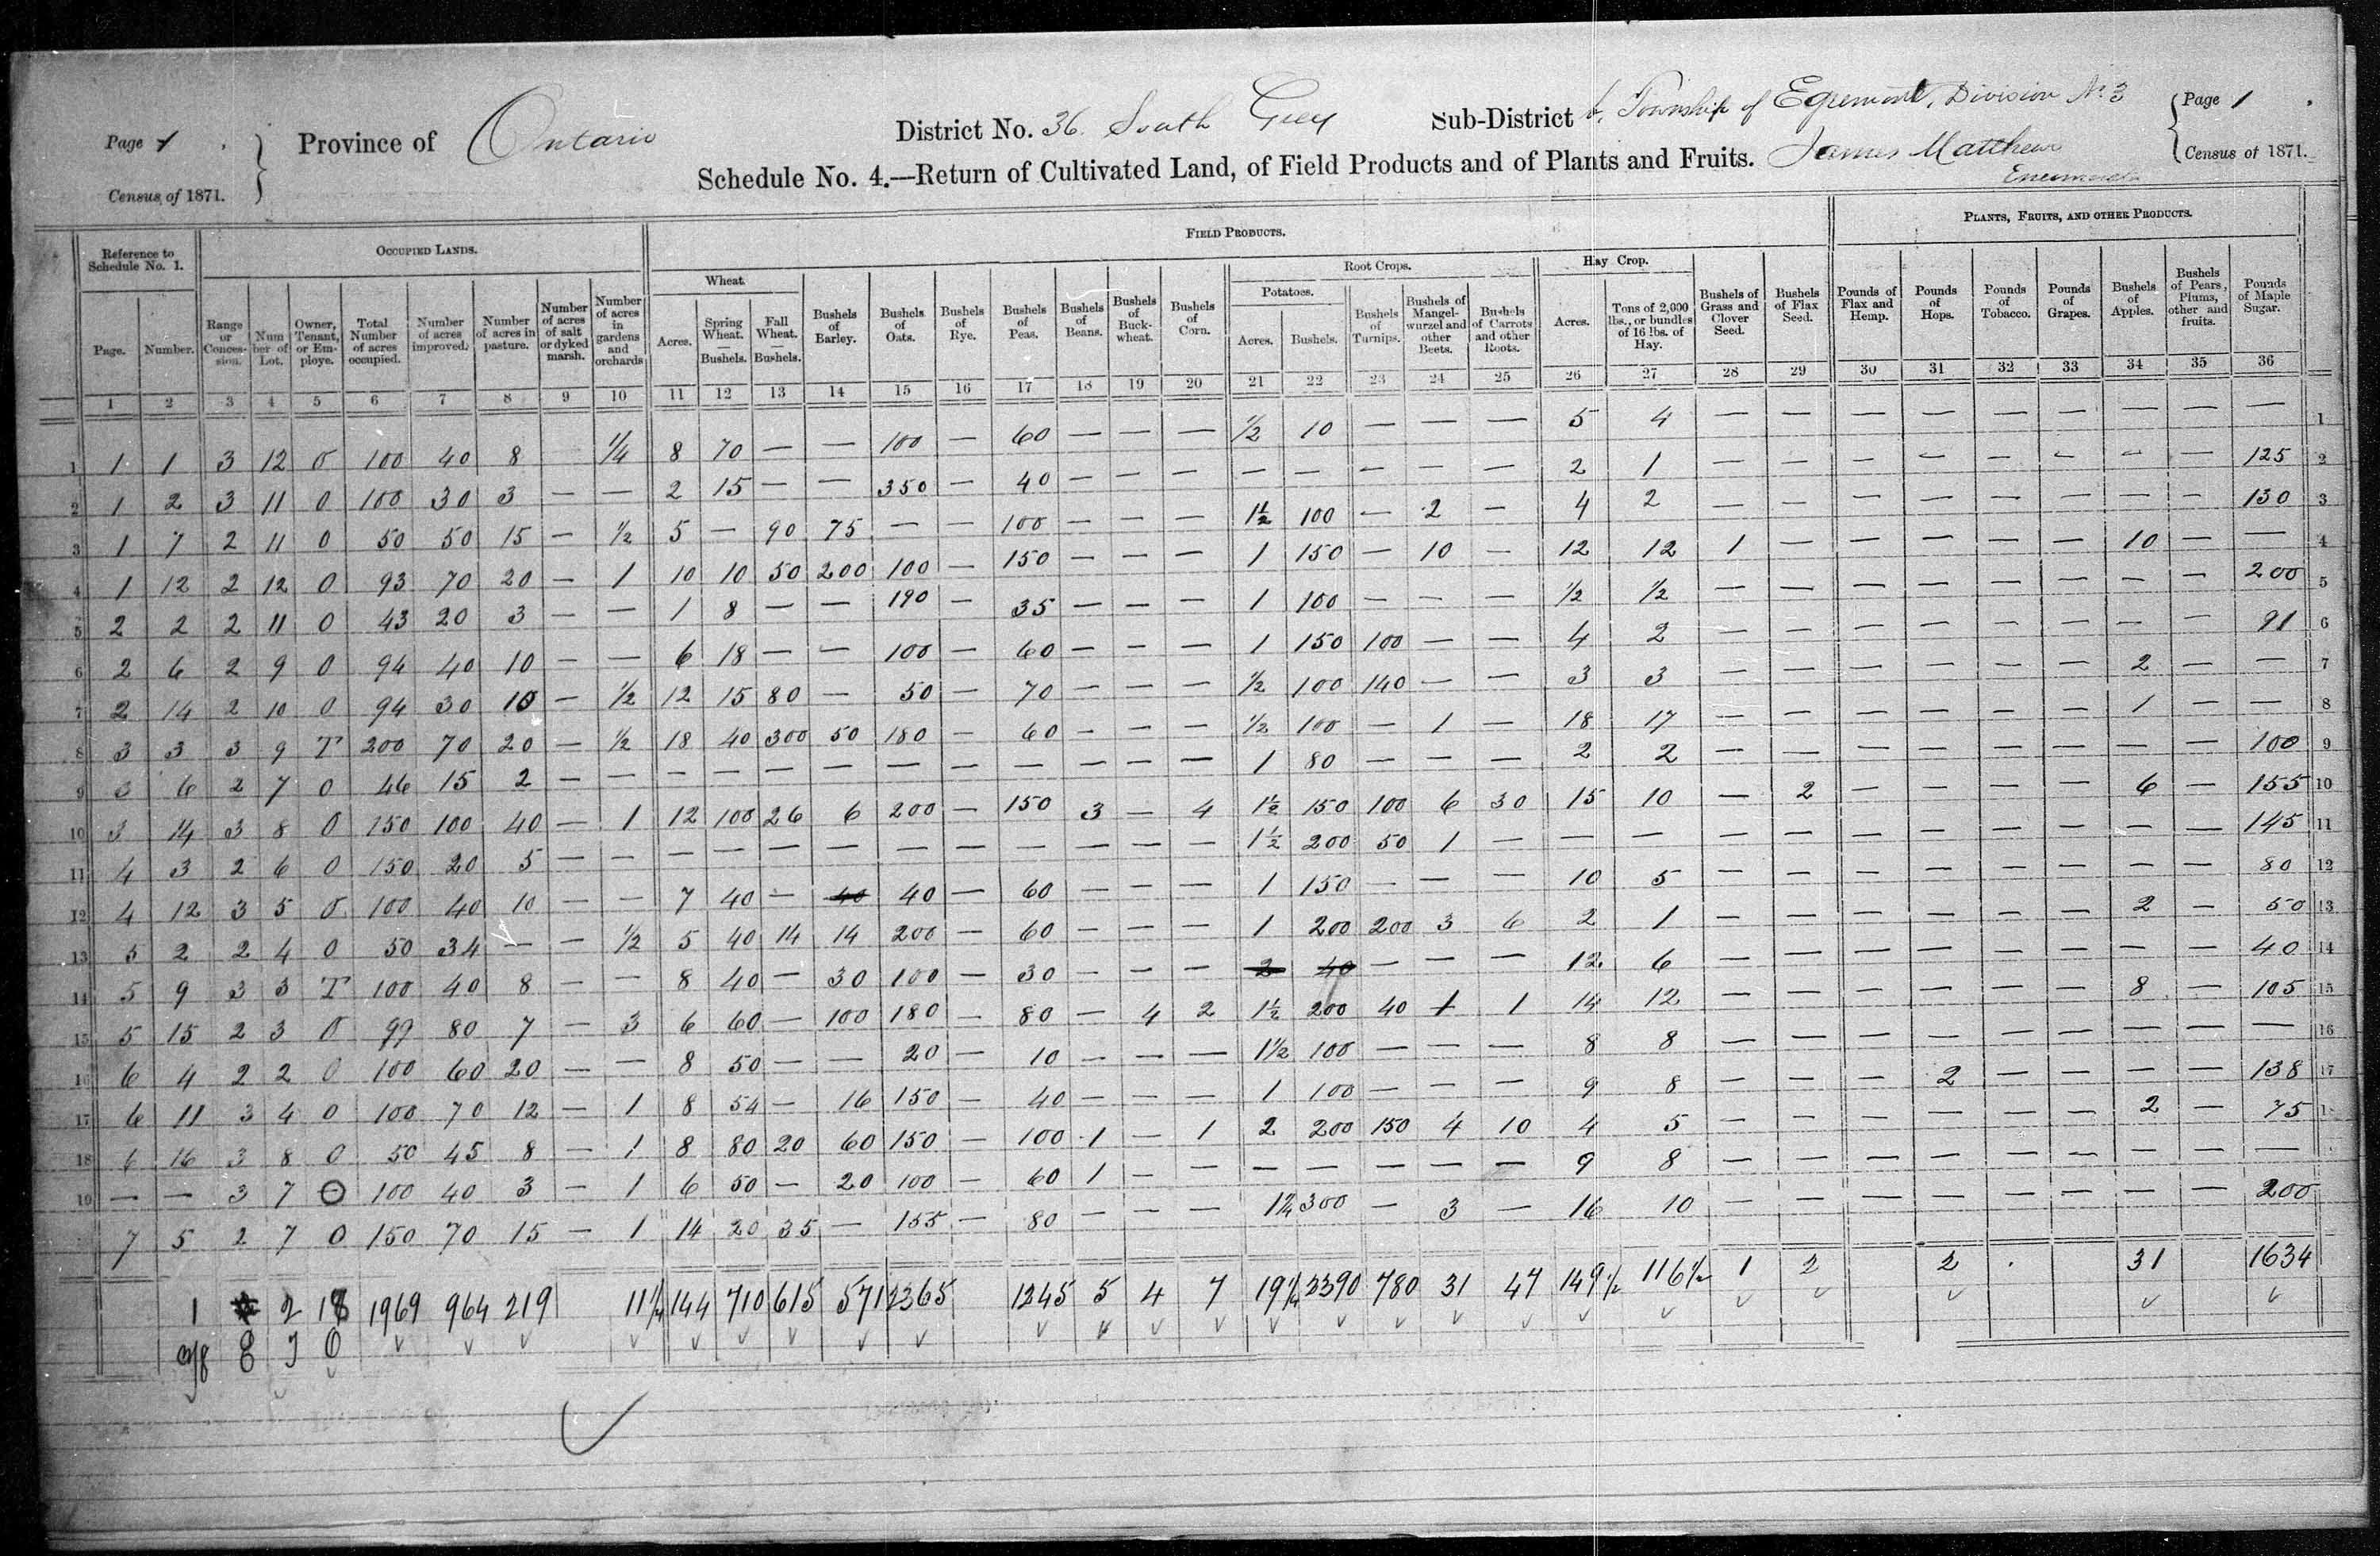 Title: Census of Canada, 1871 - Mikan Number: 142105 - Microform: c-9951